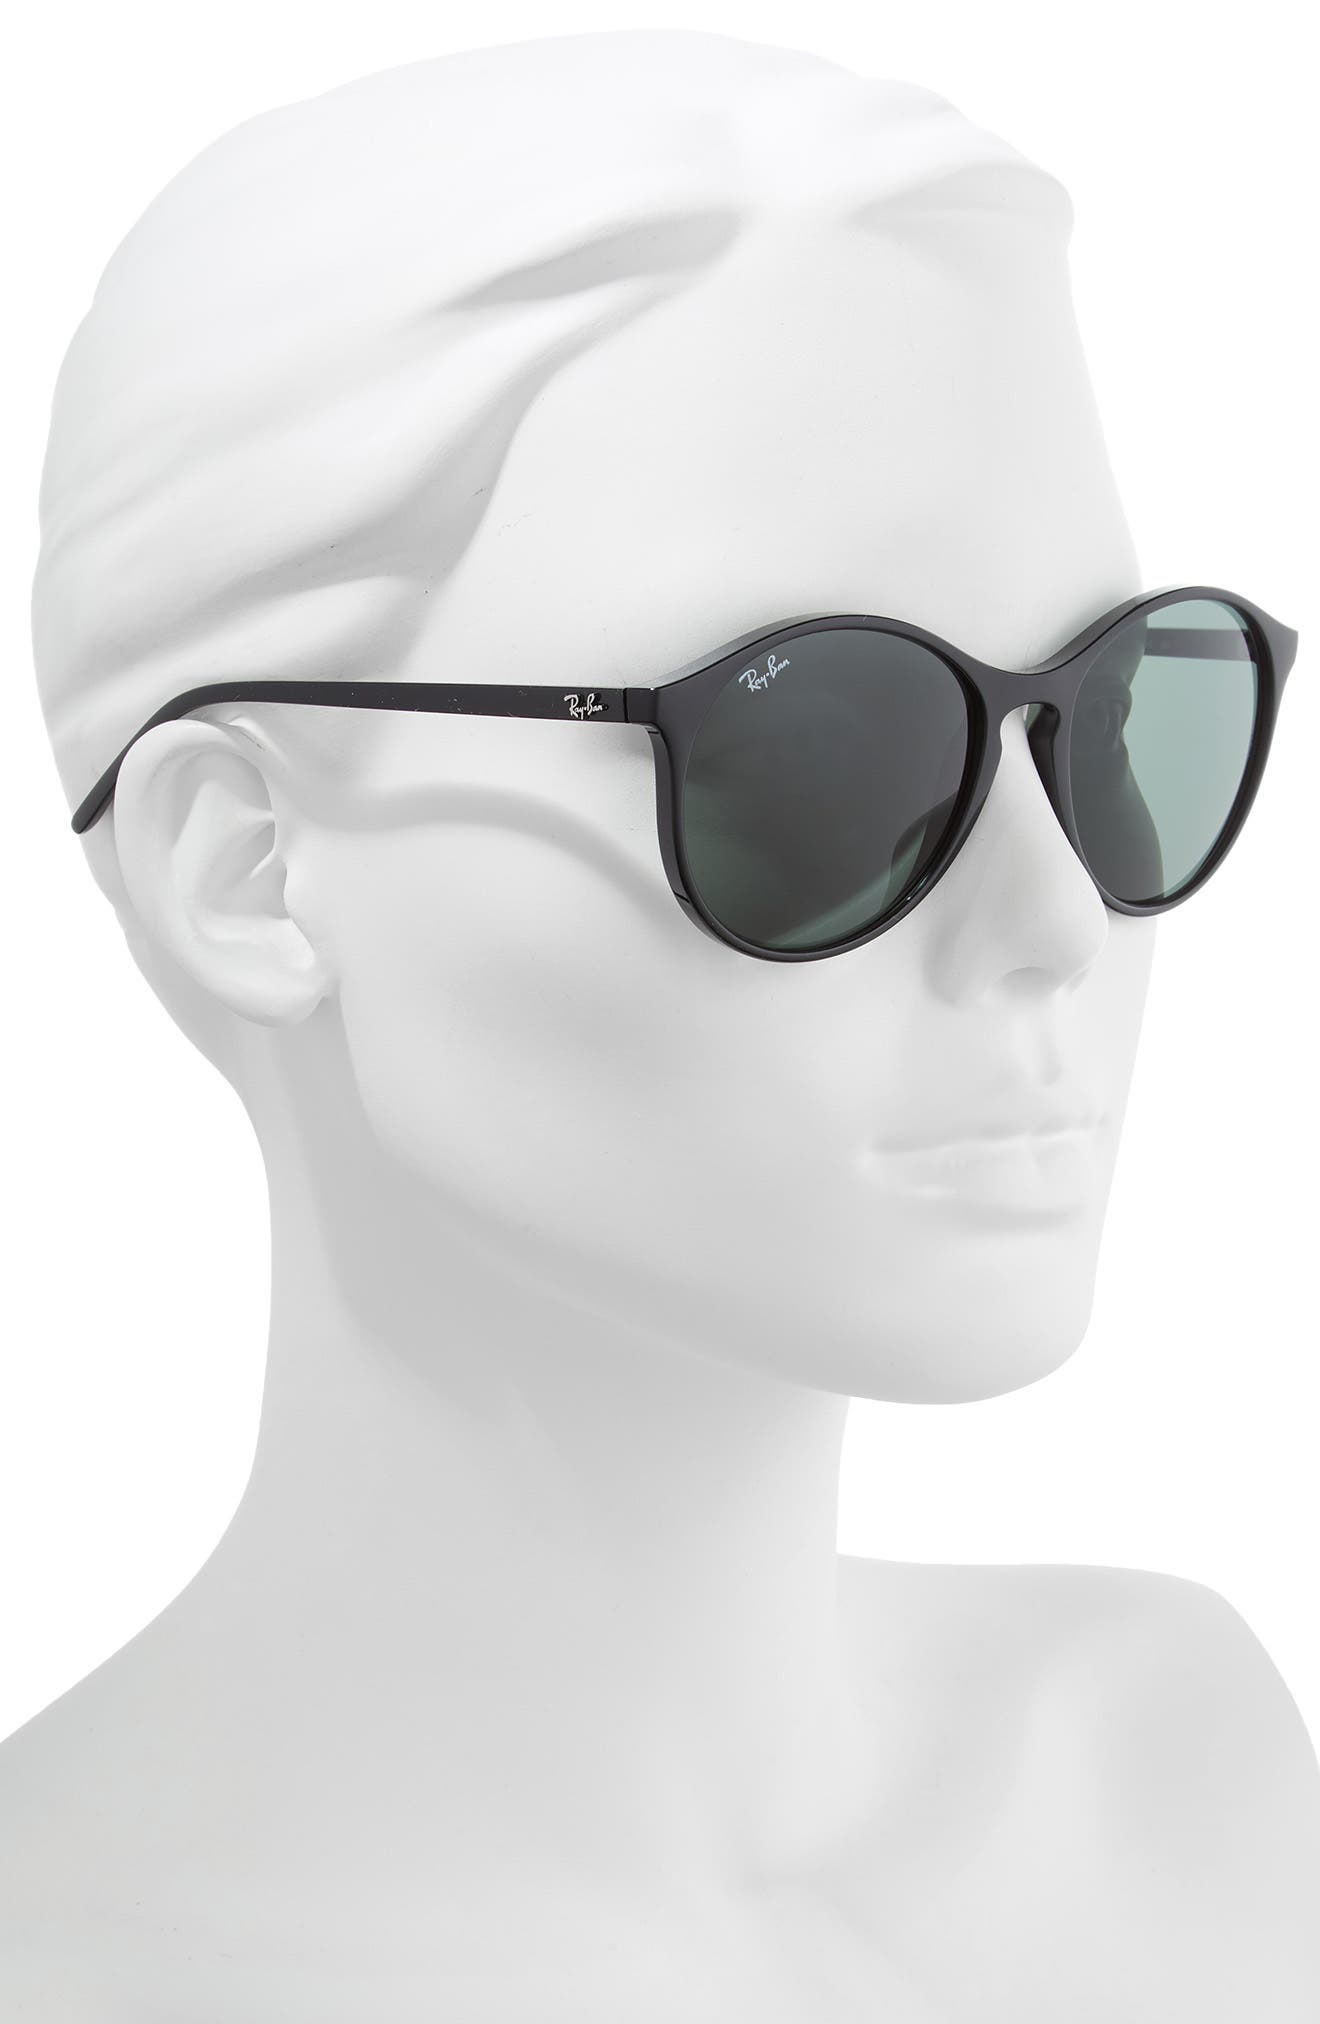 Highstreet 55mm Round Sunglasses,                             Alternate thumbnail 2, color,                             BLACK/ GREEN SOLID